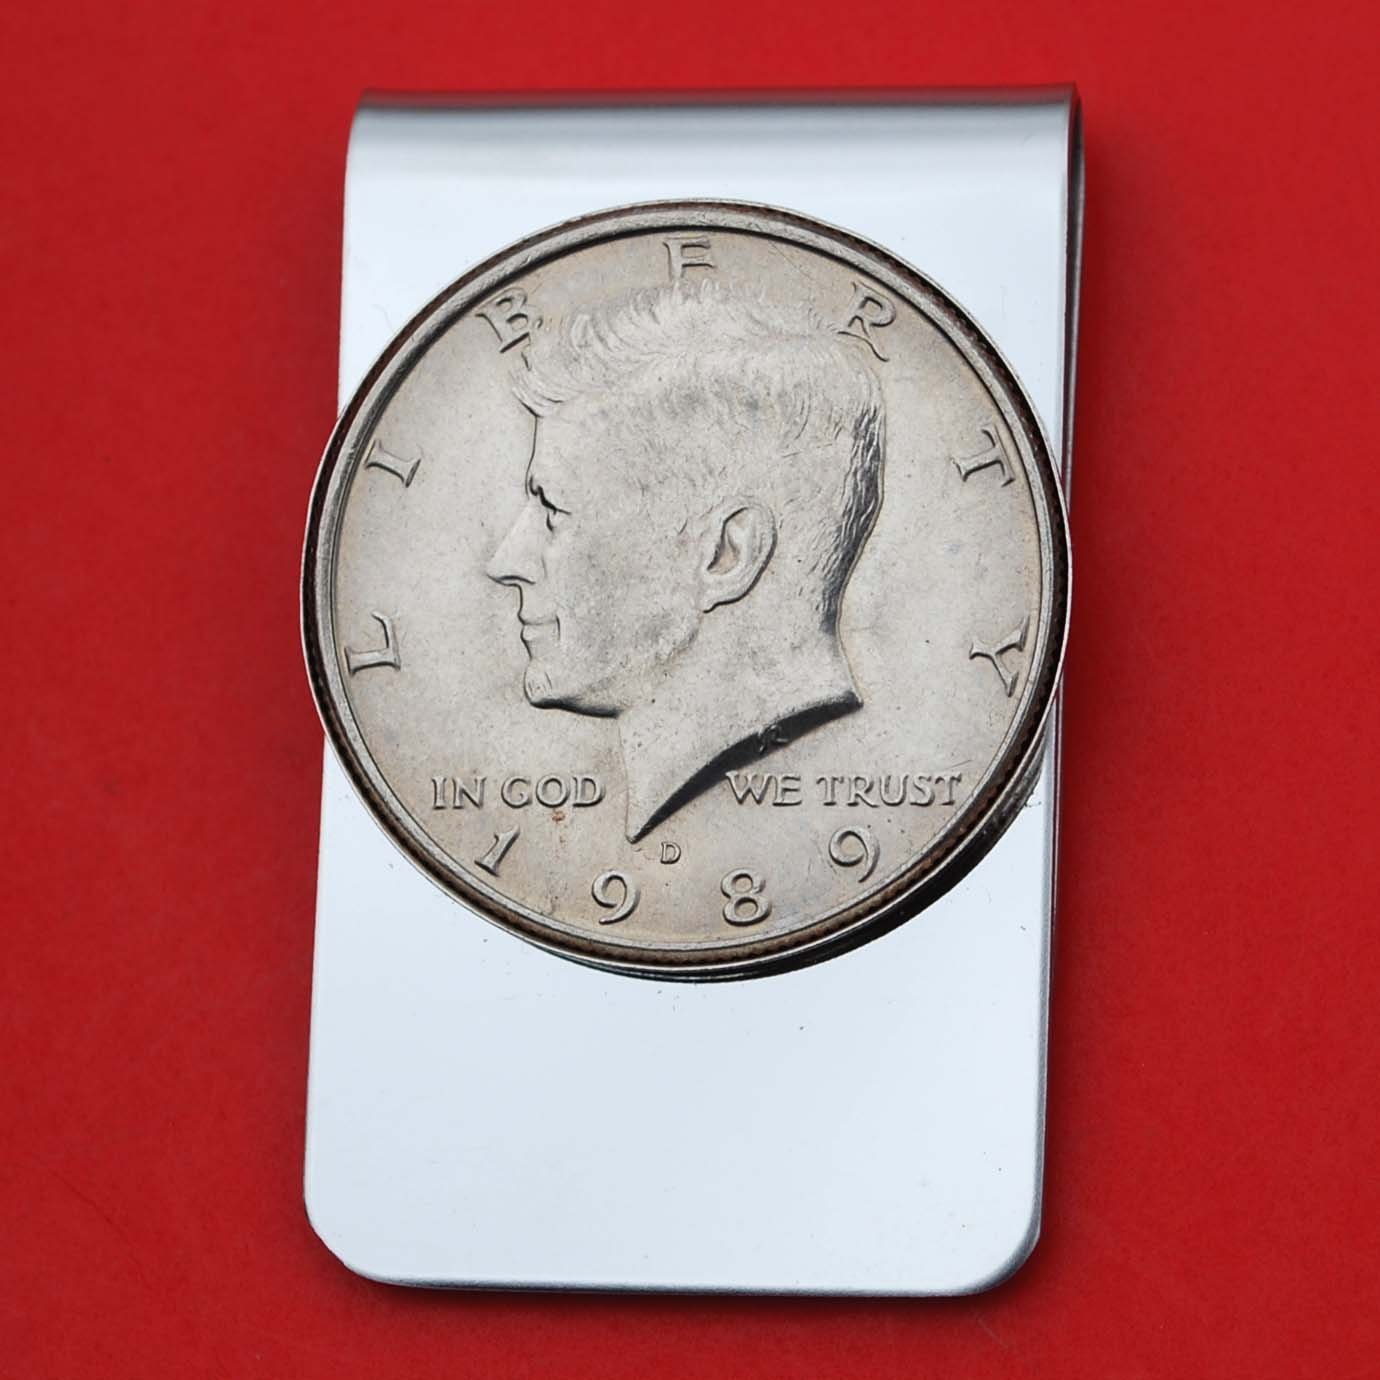 US 1989 Kennedy Half Dollar BU Uncirculated Coin Stainless Steel Money Clip NEW - Silver Plated Coin Bezel